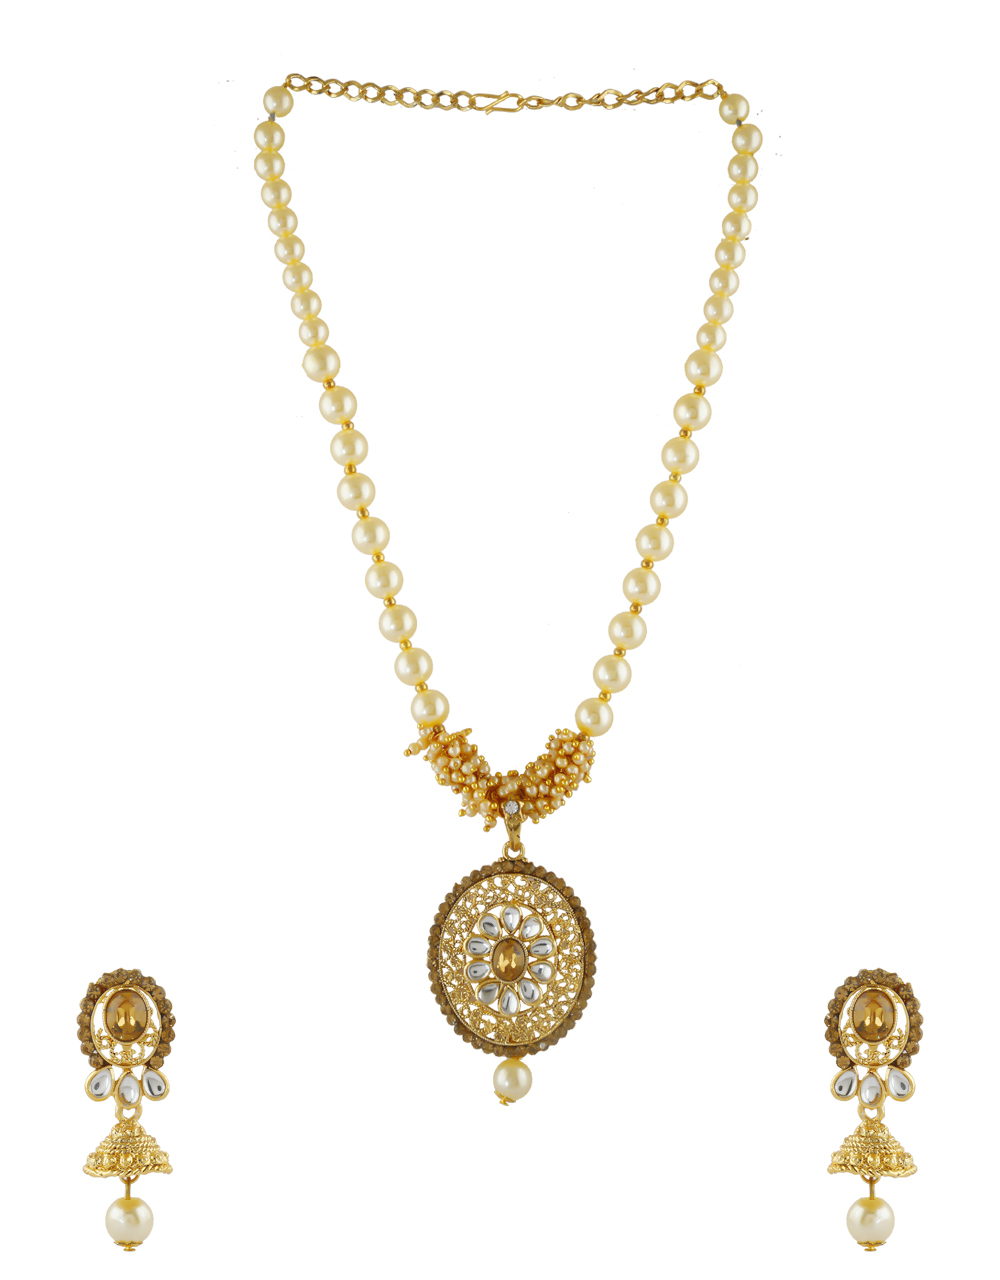 Gold Finish Pendant Set Styled With Pearls Beads Fancy Chain Pendant